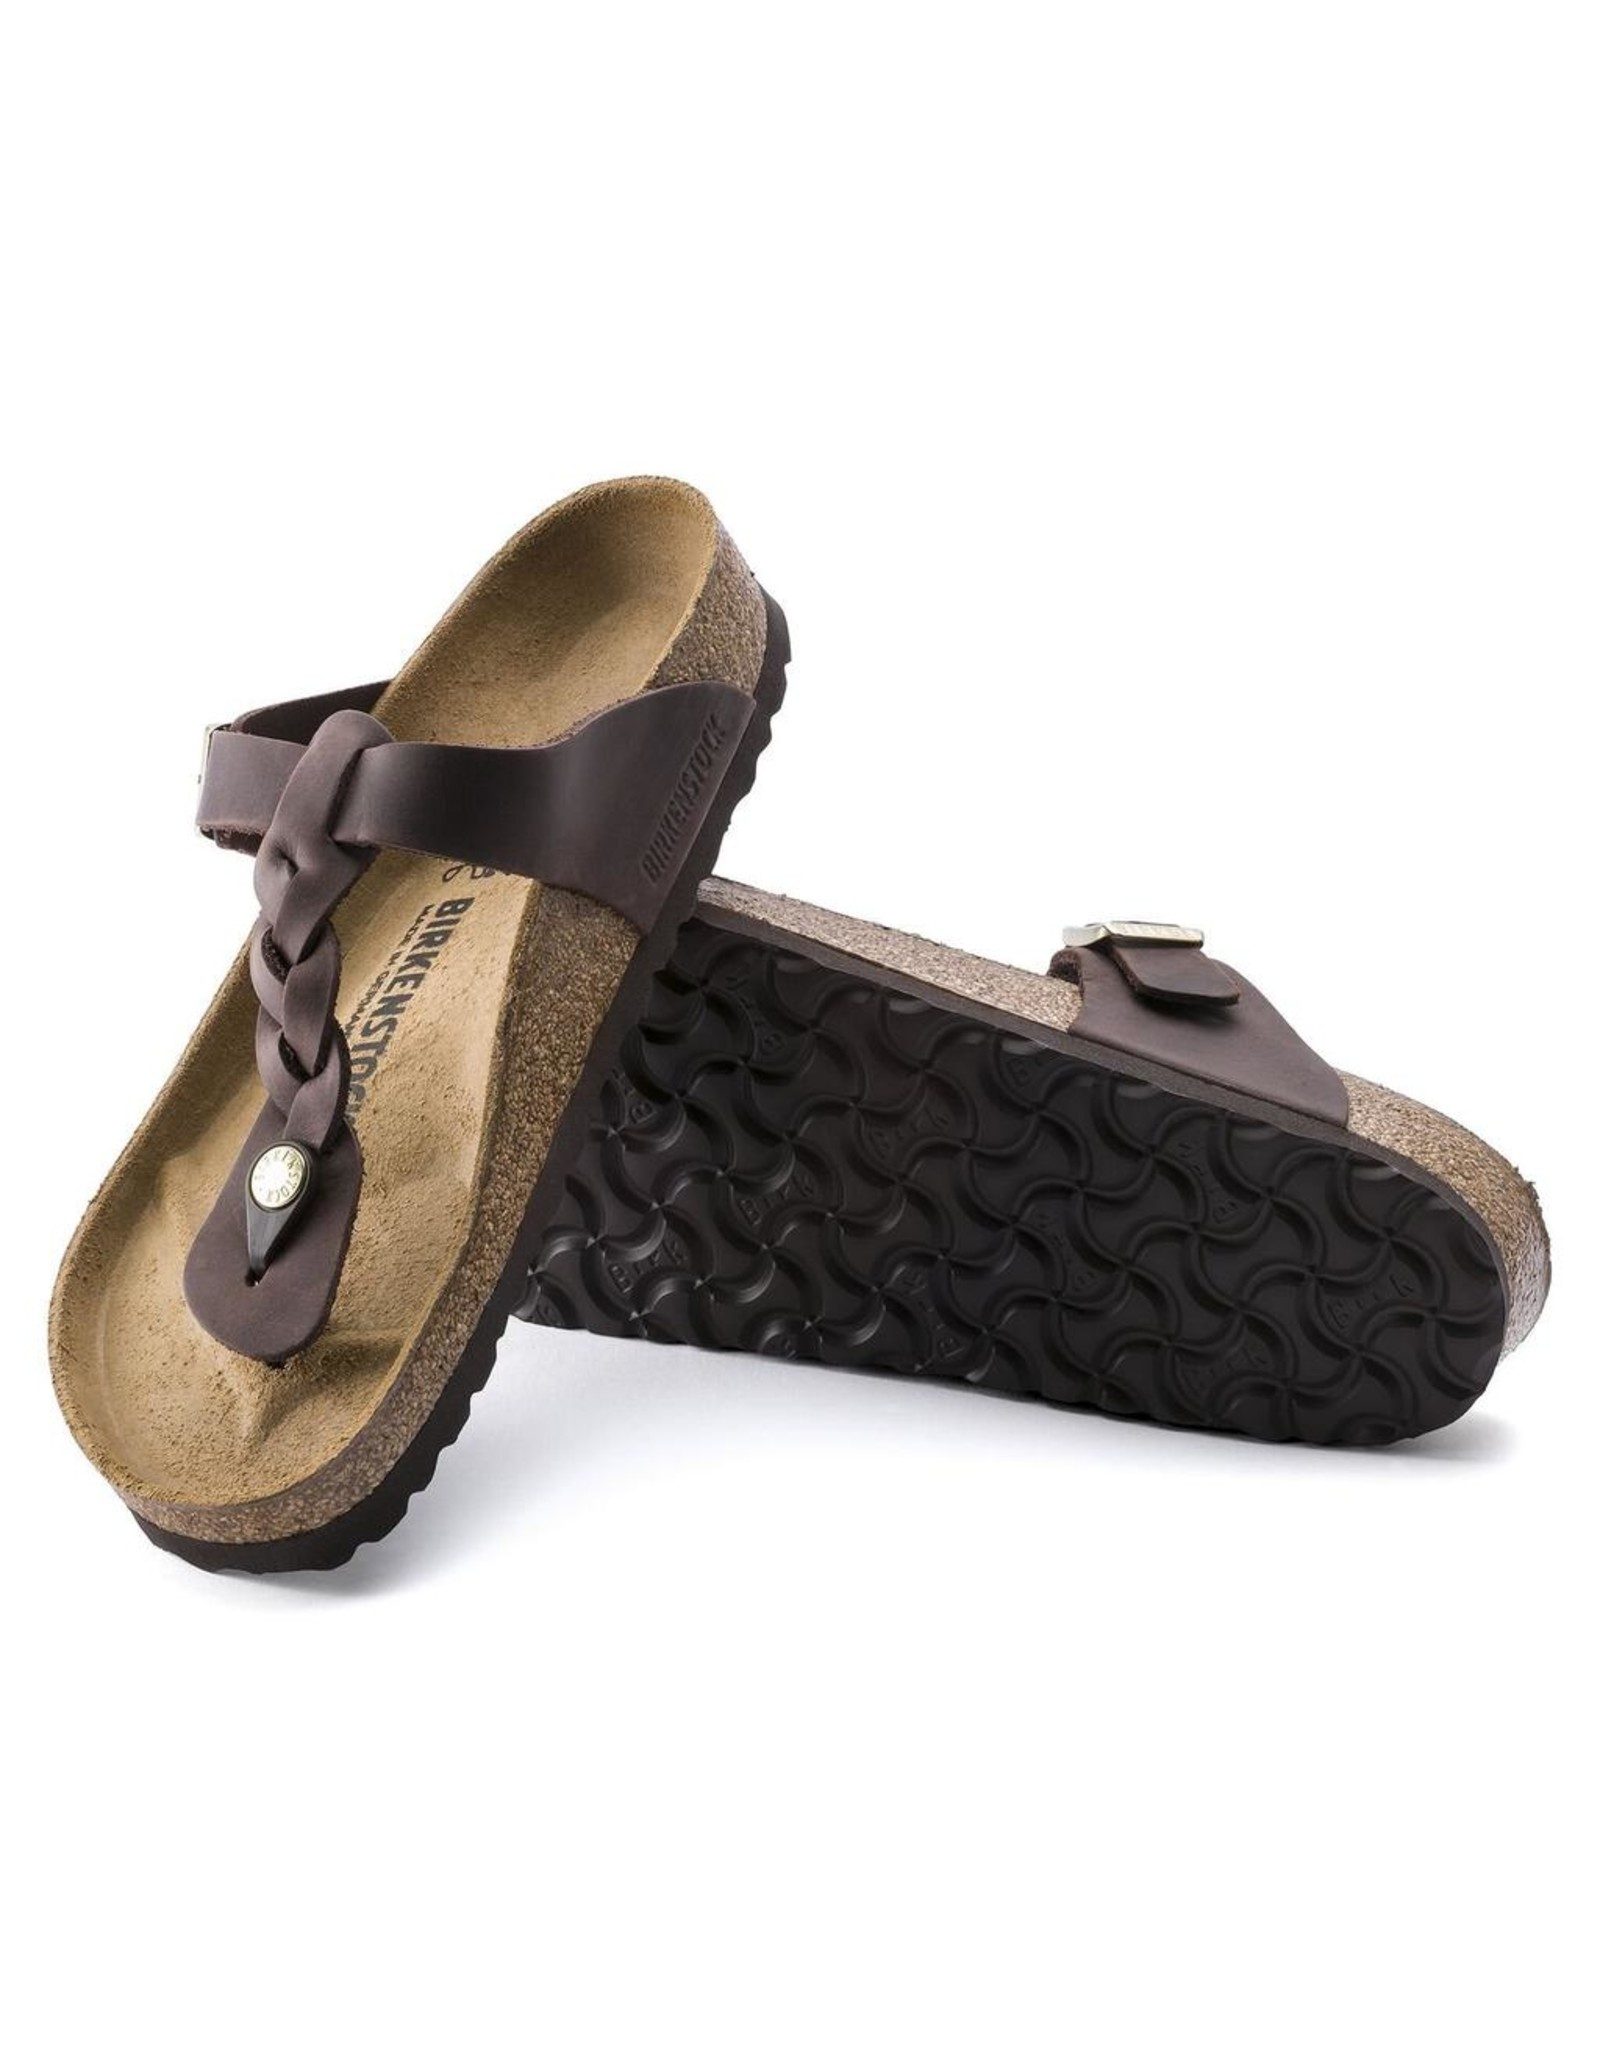 Birkenstock Habana Leather Gizeh Braid Sandal